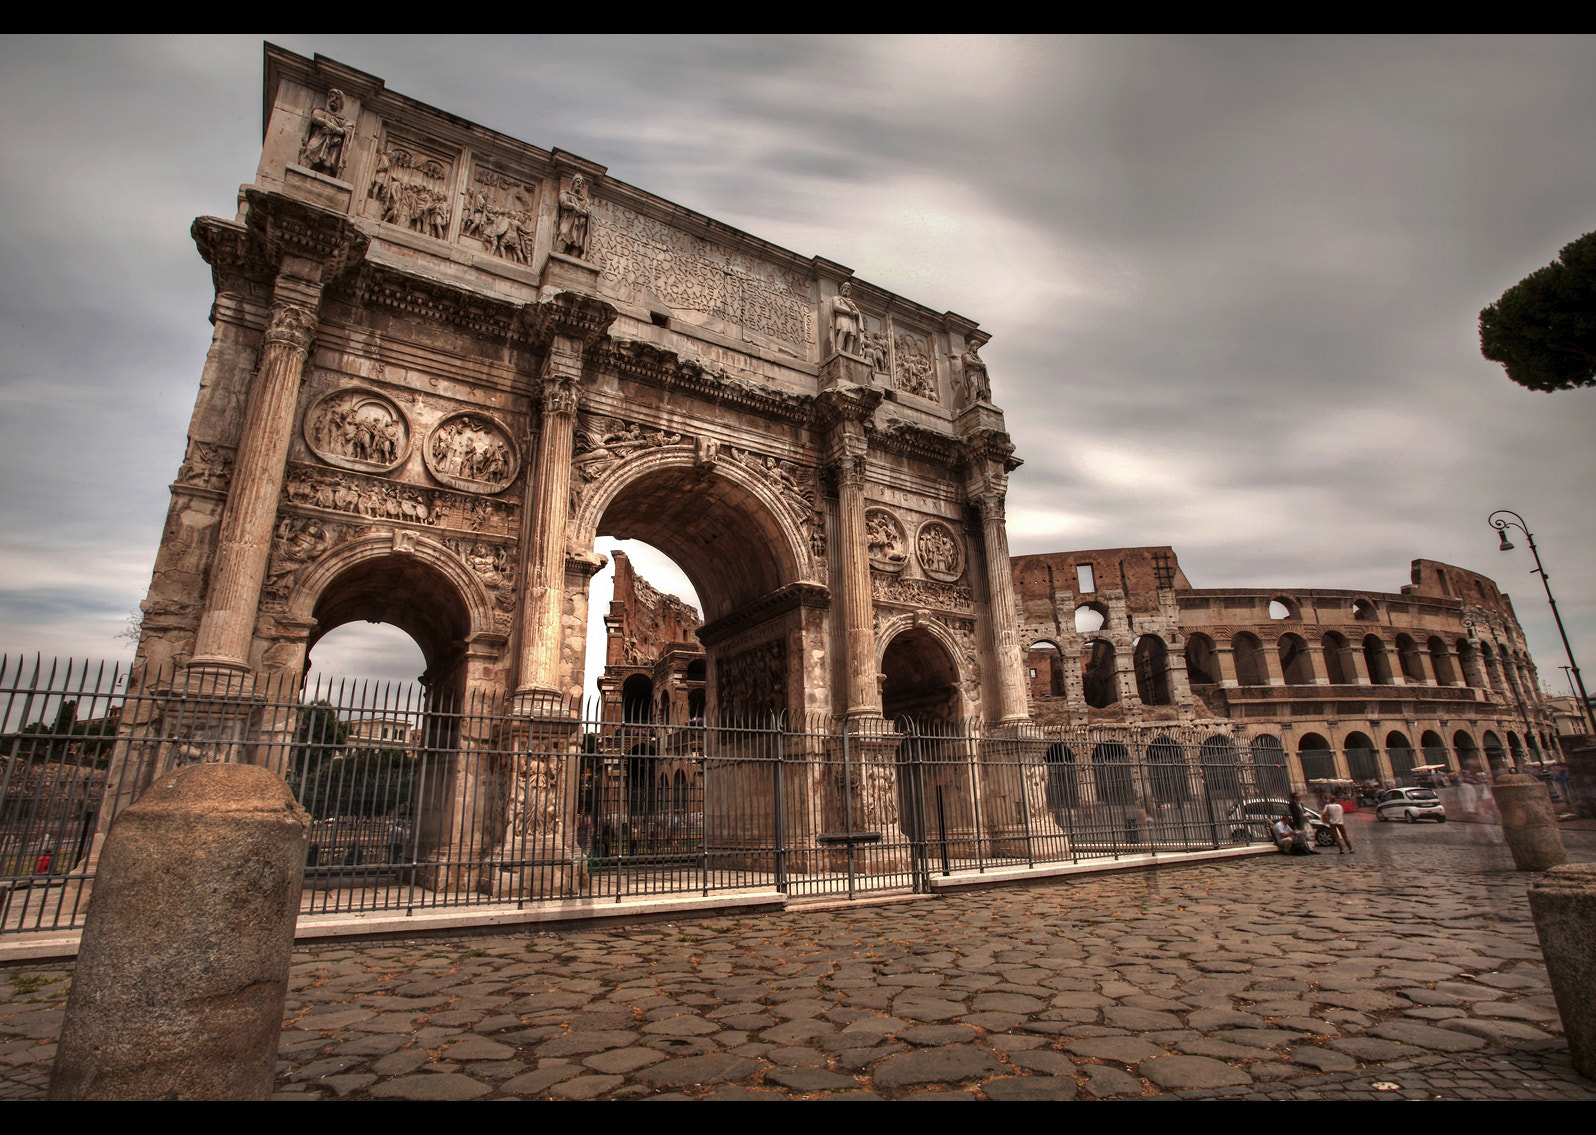 Photograph *Arch of Constantine to Colosseum* by erhan sasmaz on 500px